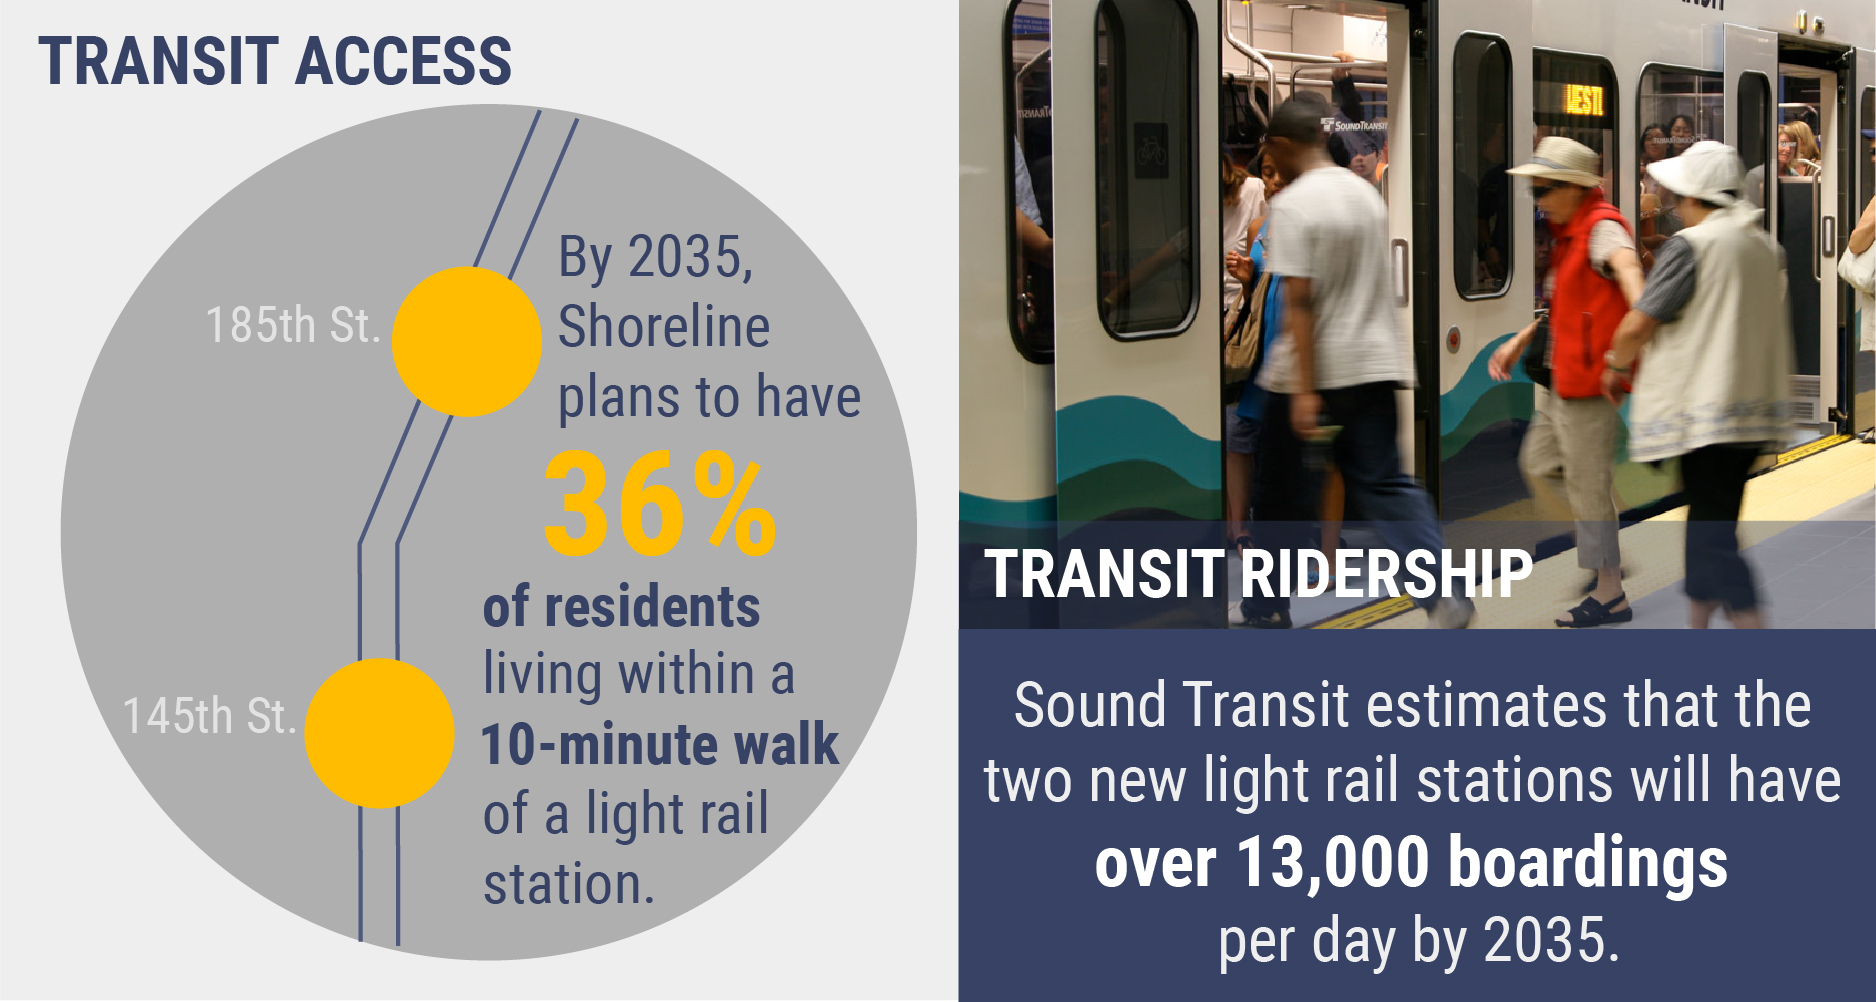 "Infographic stating ""By 2035, Shoreline plans to have 36% of residents living within a 10-minute walk of a light rail station."" Also states, ""The City estimates that the two light rail stations will have over 13,000 boardings per day by 2035."""